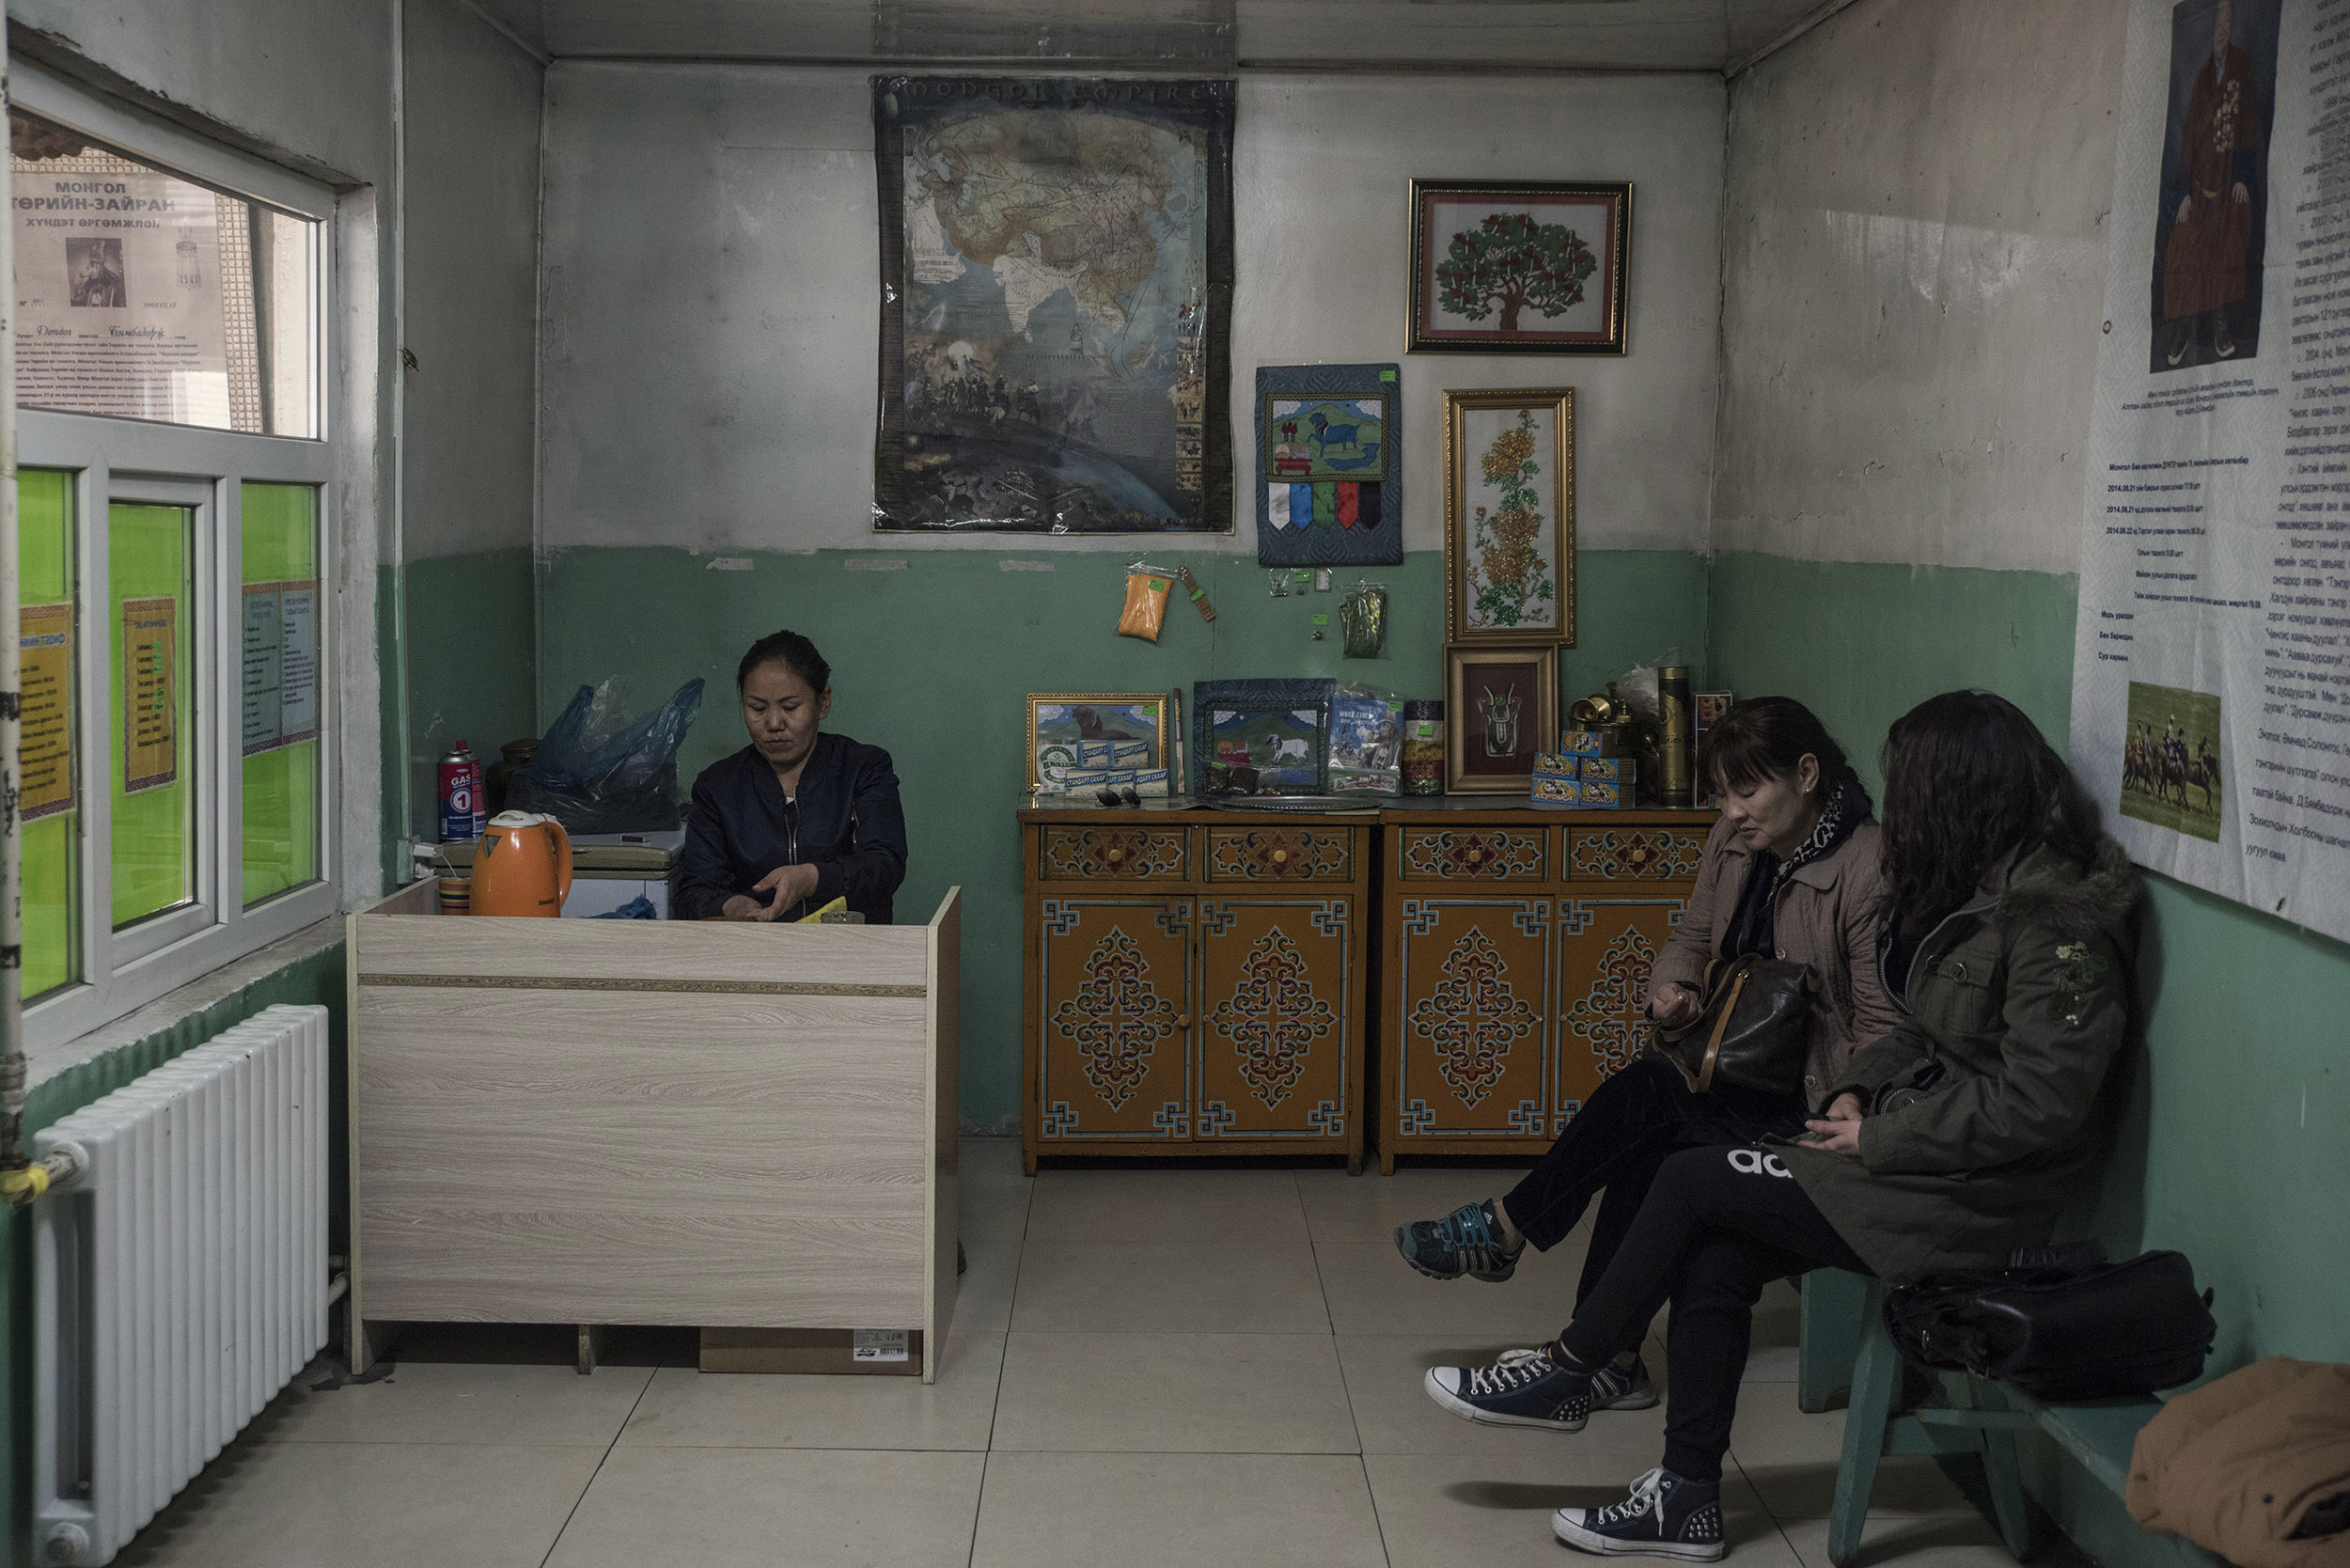 Two women in the waiting room of Byambadorj's home, waiting  for an audience with the master shaman. Across from them a menu of the shaman services has been posted on the wall : from curing health problems, to removing or casting curses, including fortune telling.   Behind the receptionist, a large poster shows the boundaries of the Mongolian empire at the time of Genghis Khan. The revival of shamanism coincides with a rise of nationalism. Shamanism is closely associated with the Mongolian identity and culture.